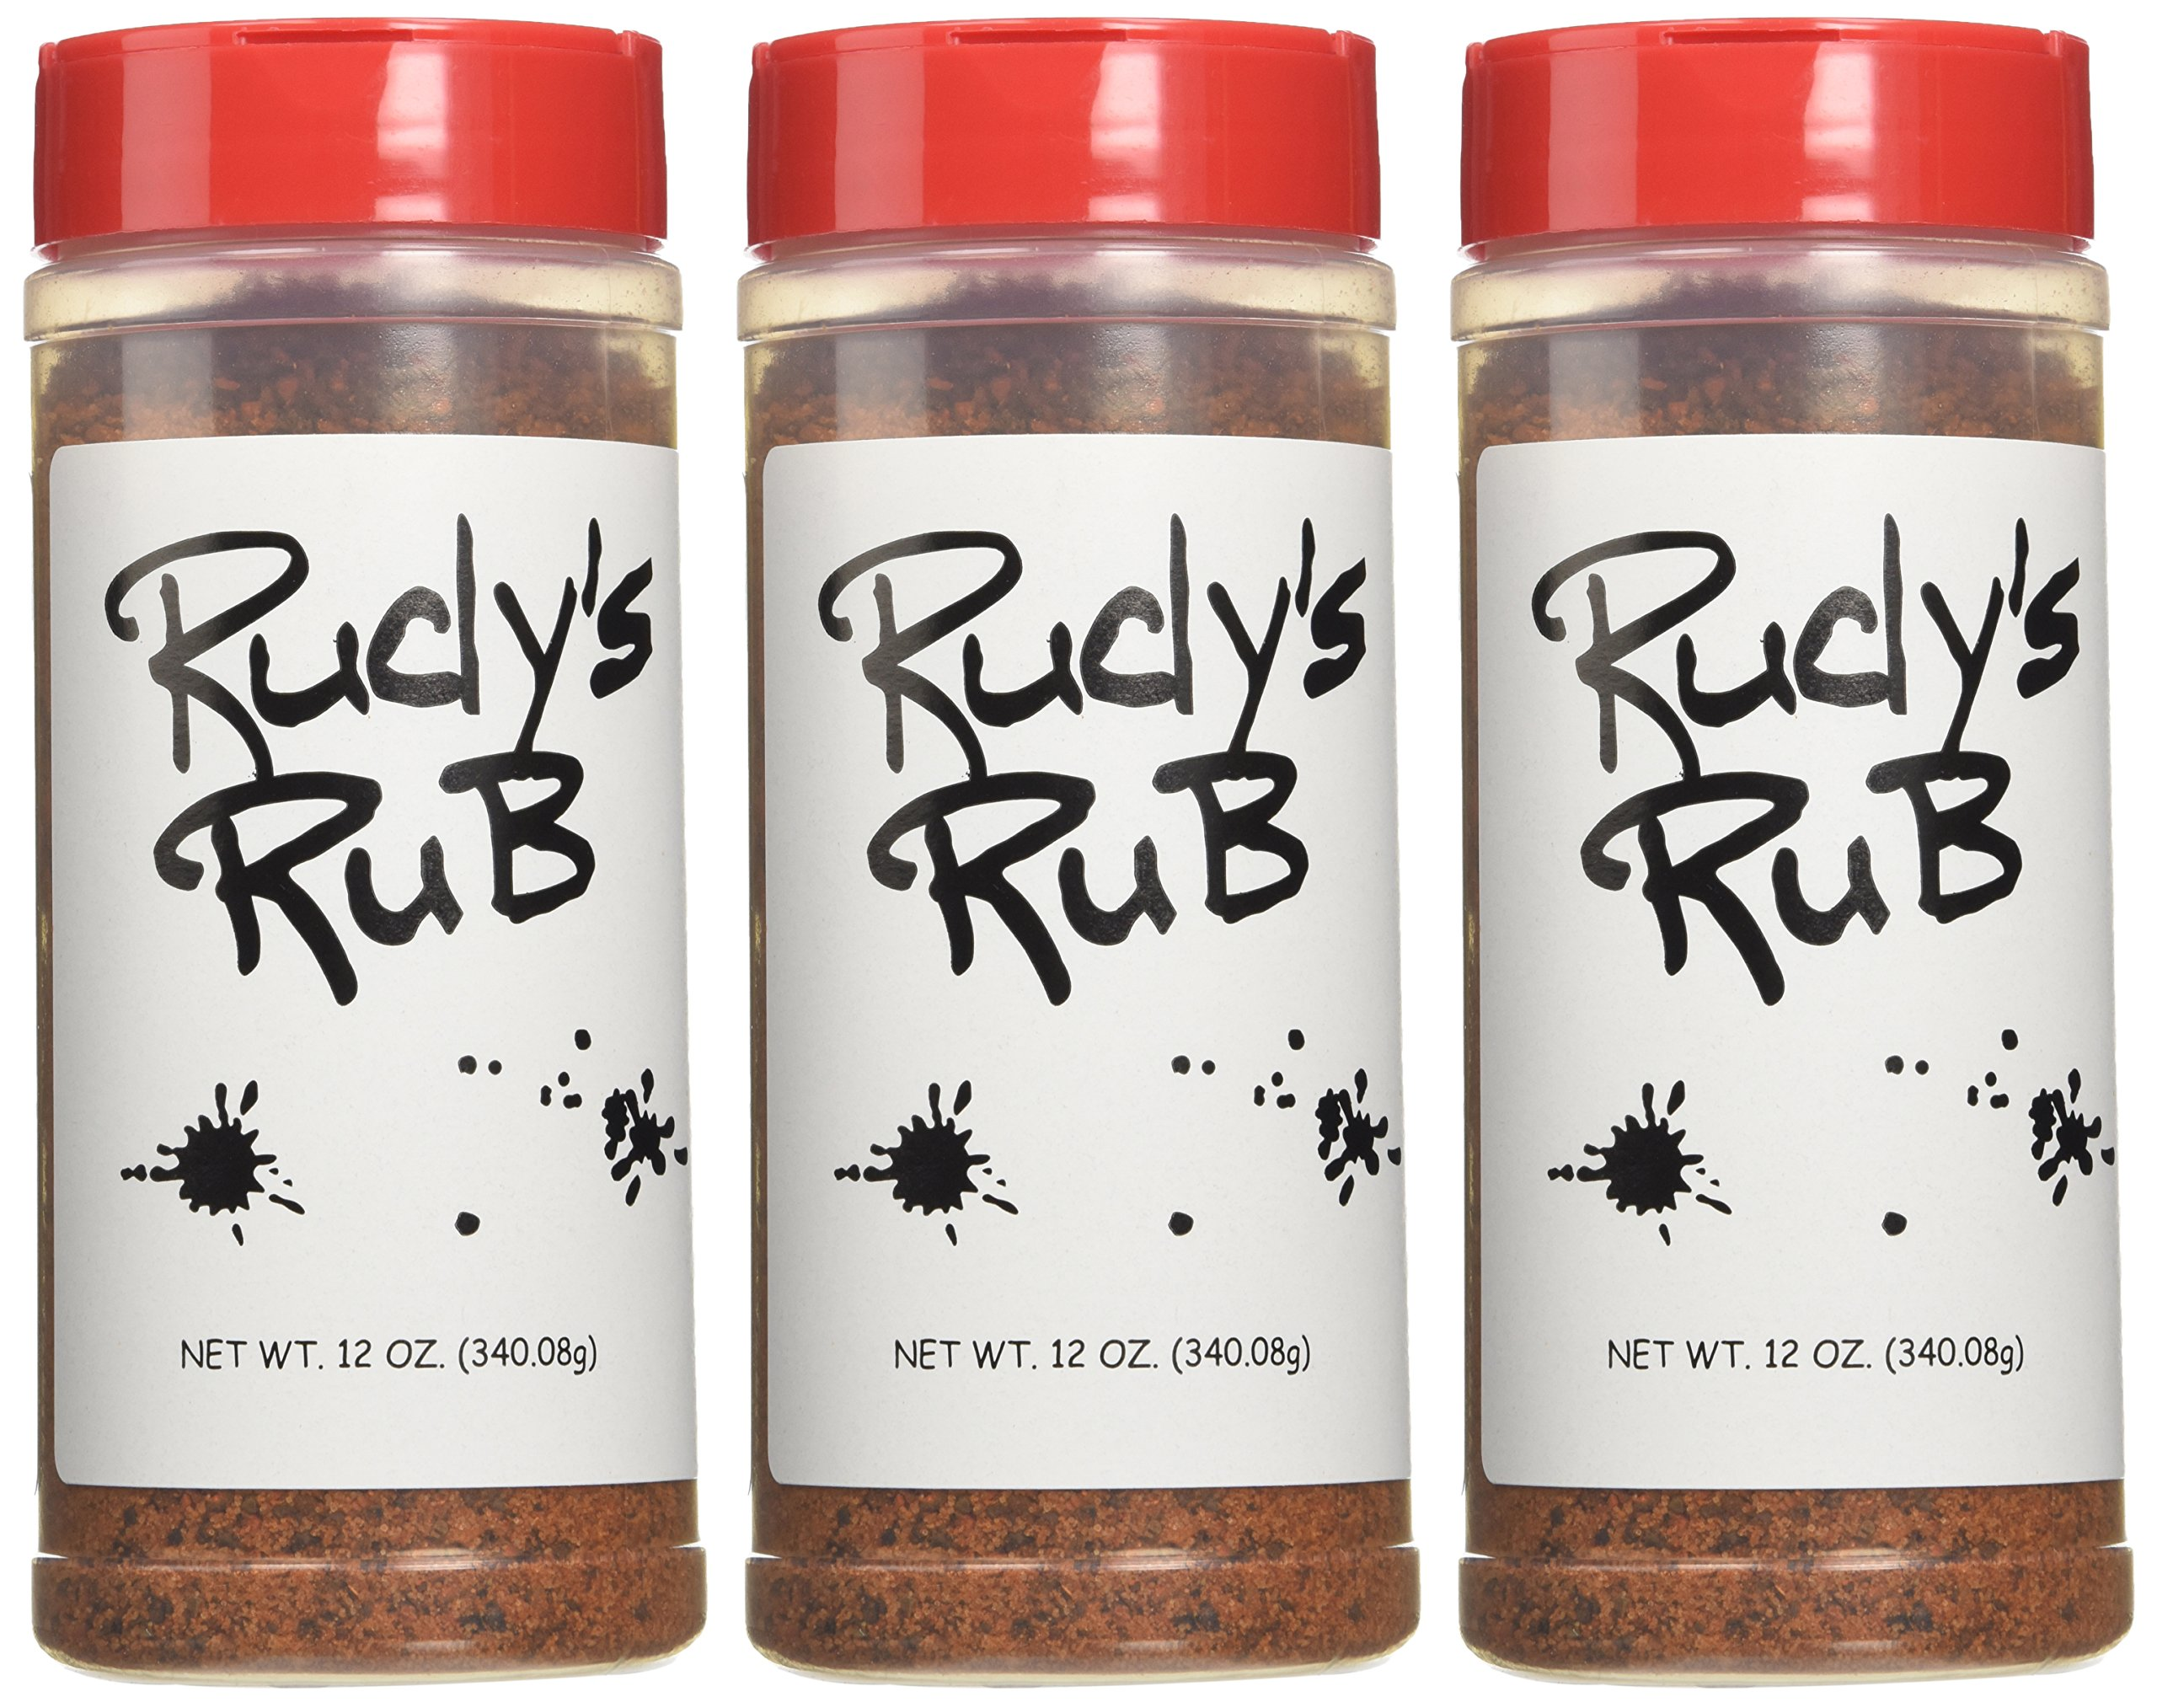 Rudy's Rub 12oz Container (Pack of 3) (Original) by Rudy's (Image #2)